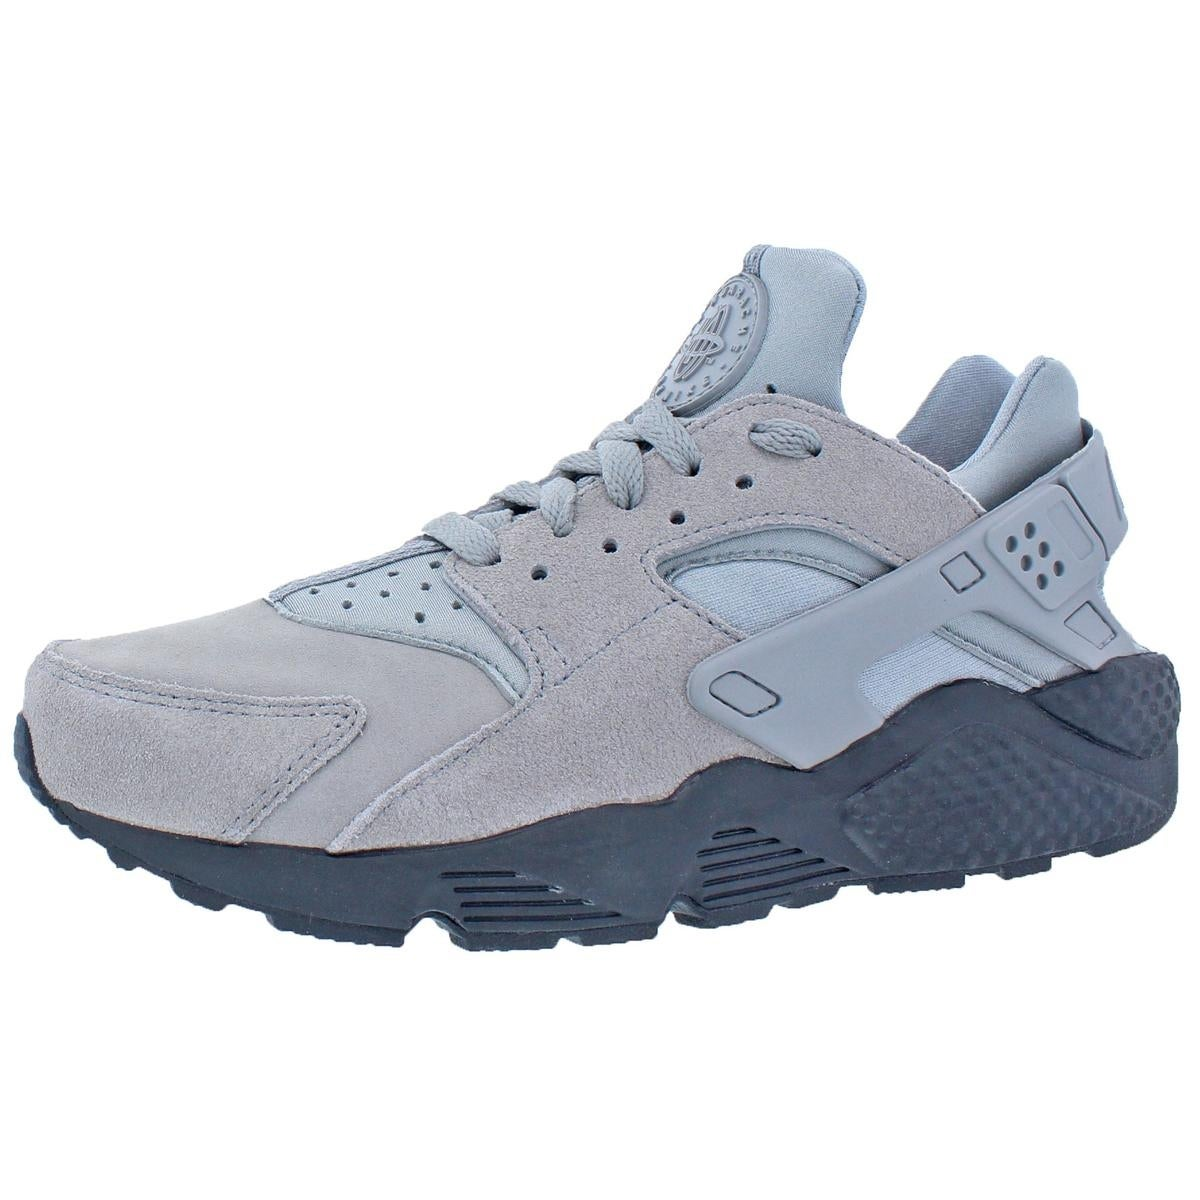 4777f5f4e3c9 Shop Nike Mens Air Huarache Run SE Fashion Sneakers Speckled Lace-Up - Free  Shipping On Orders Over  45 - Overstock - 22390923